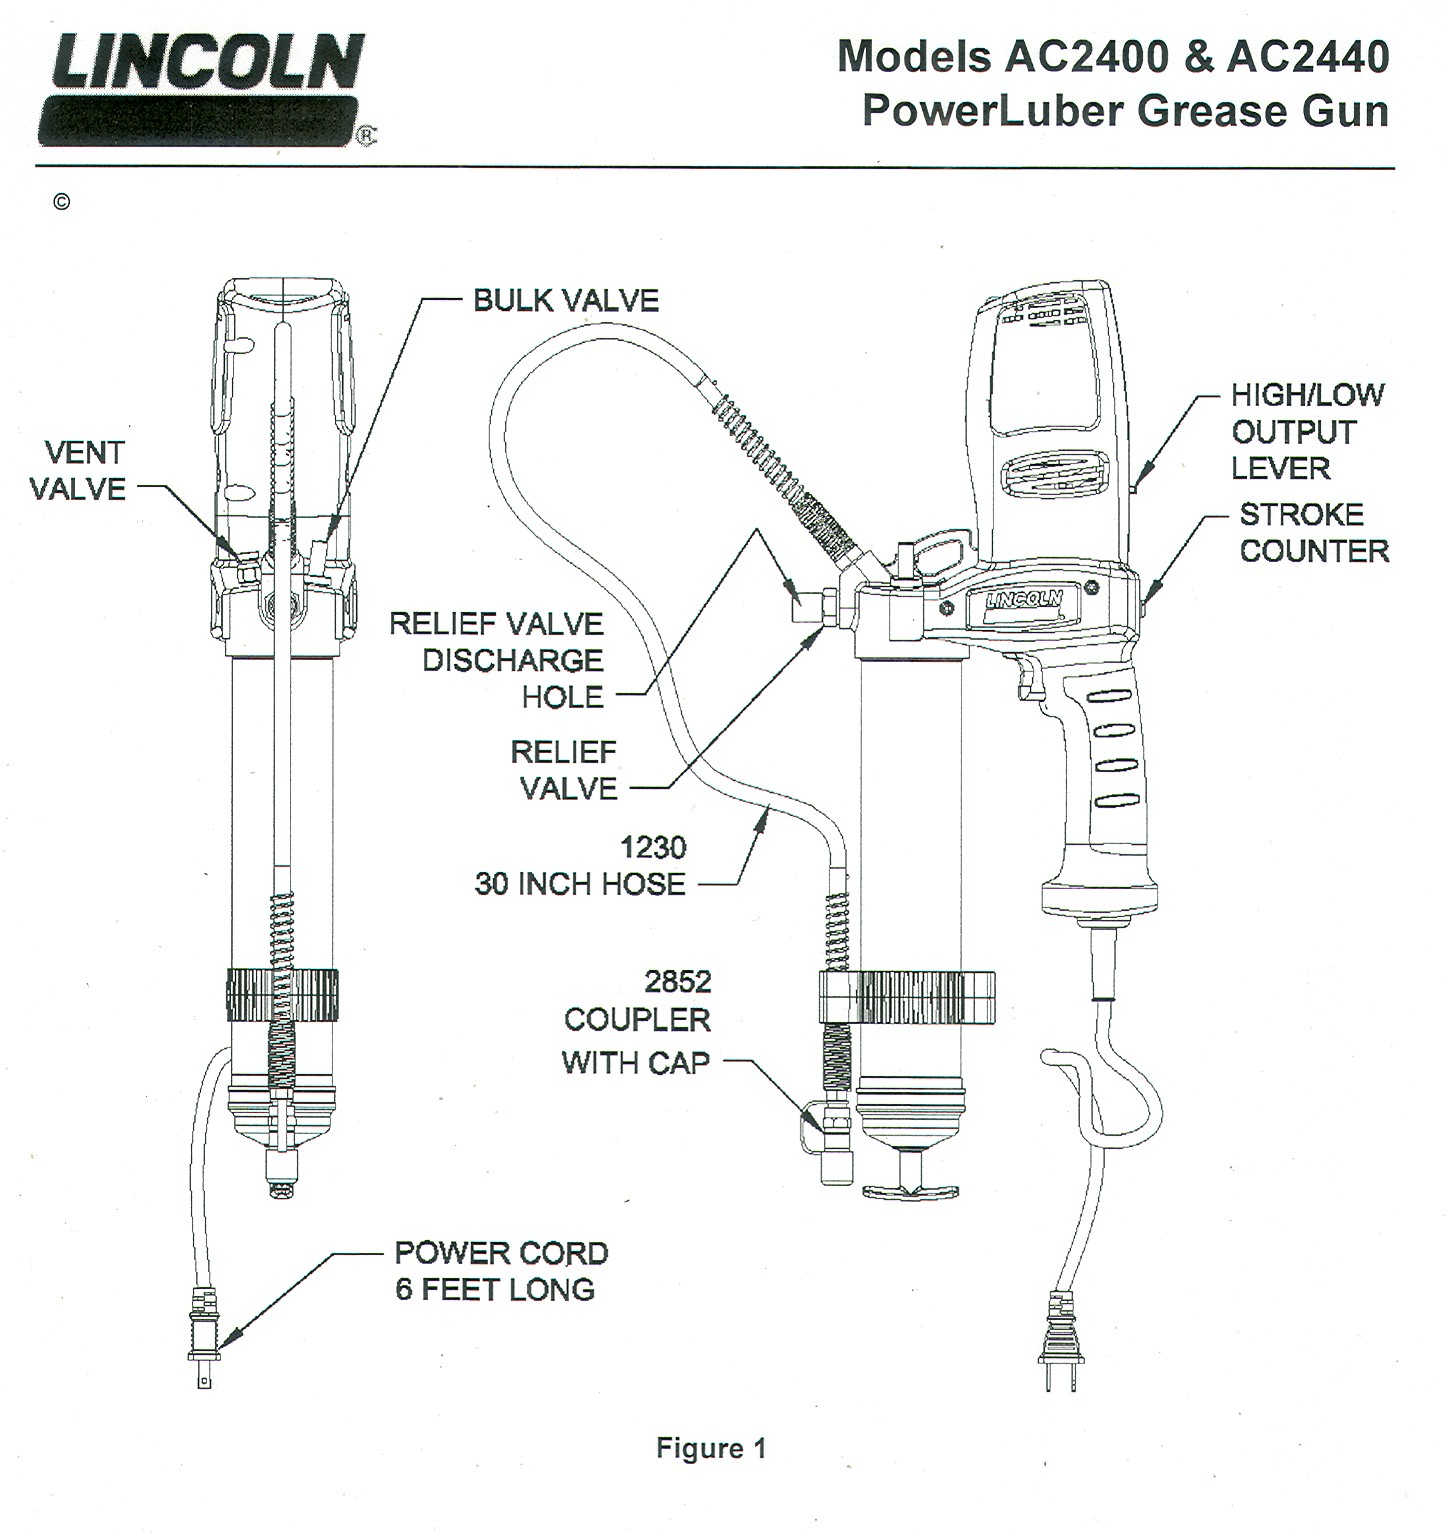 Lincoln Grease Gun